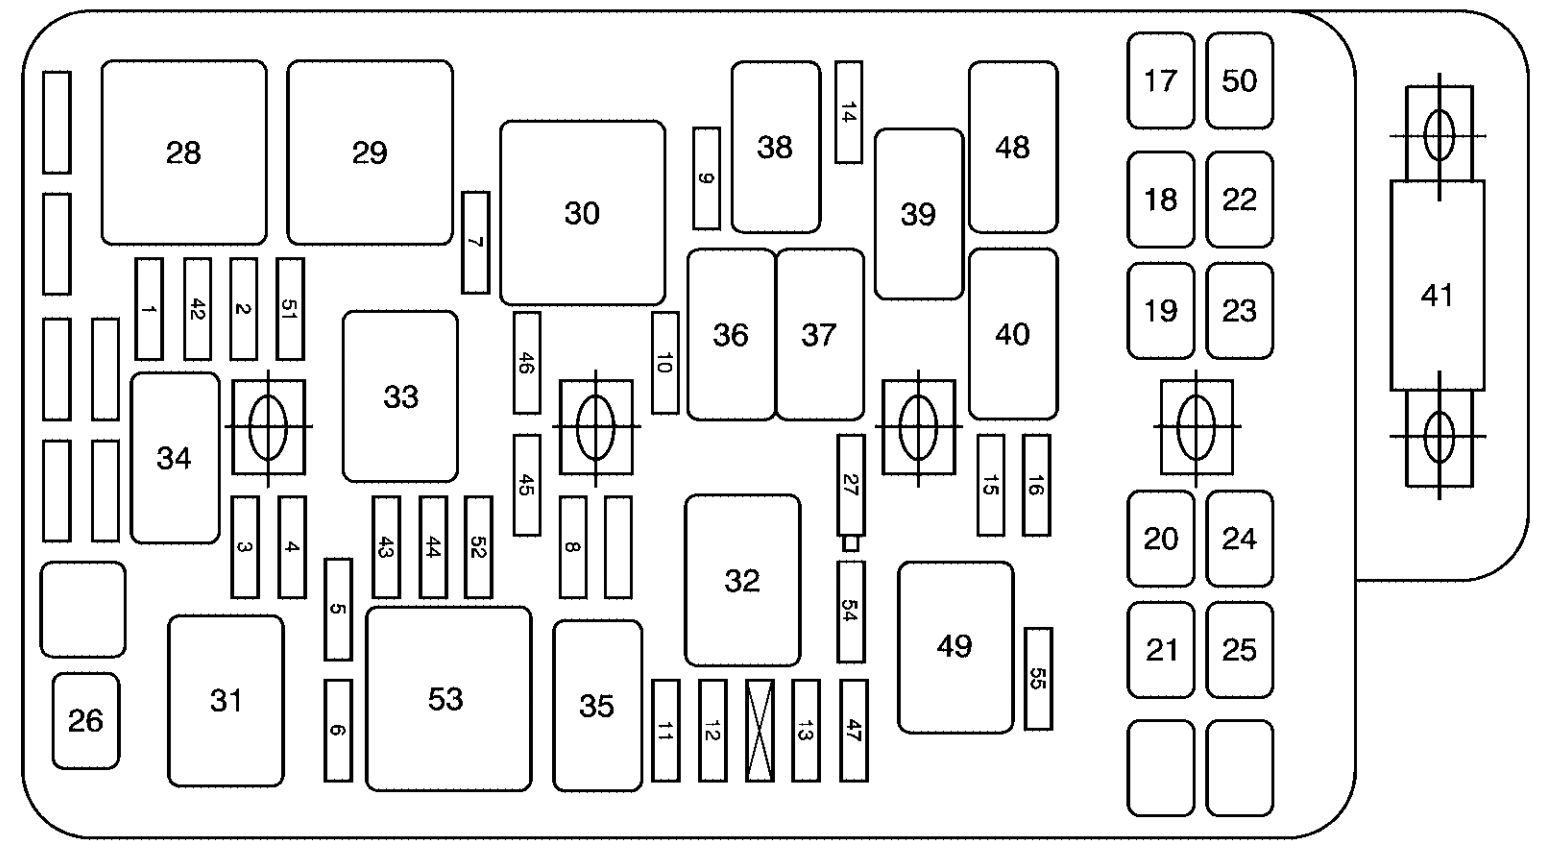 pontiac g6 fuse engine compartment g6 fuse box fuse diagram for 2006 pontiac grand am \u2022 wiring 2009 pontiac g5 fuse box location at aneh.co